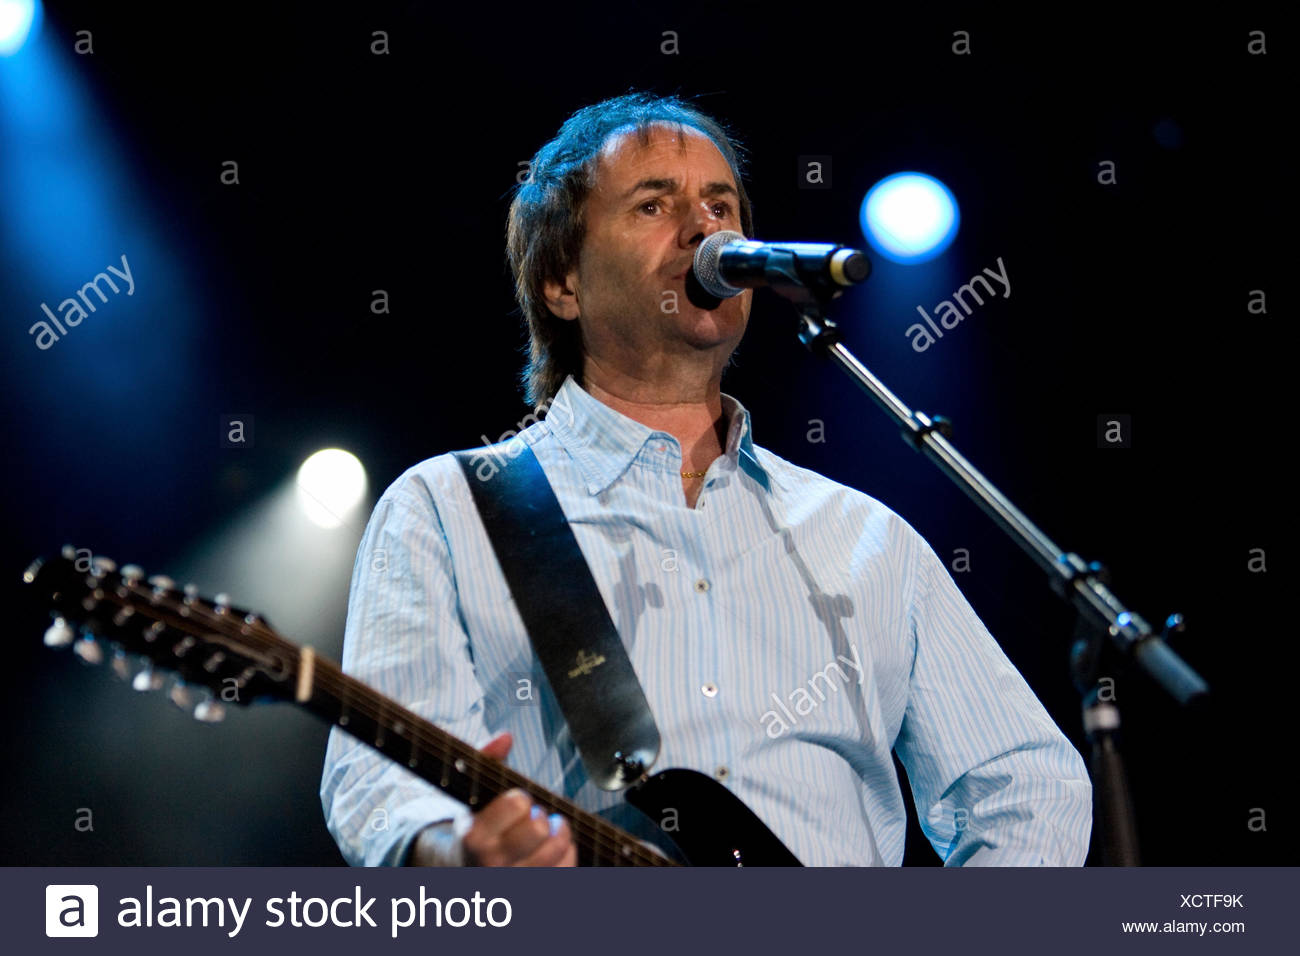 Irish singer Chris de Burgh live at the Sommerabend Open Air at the Heitere in Zofingen, Switzerland - Stock Image